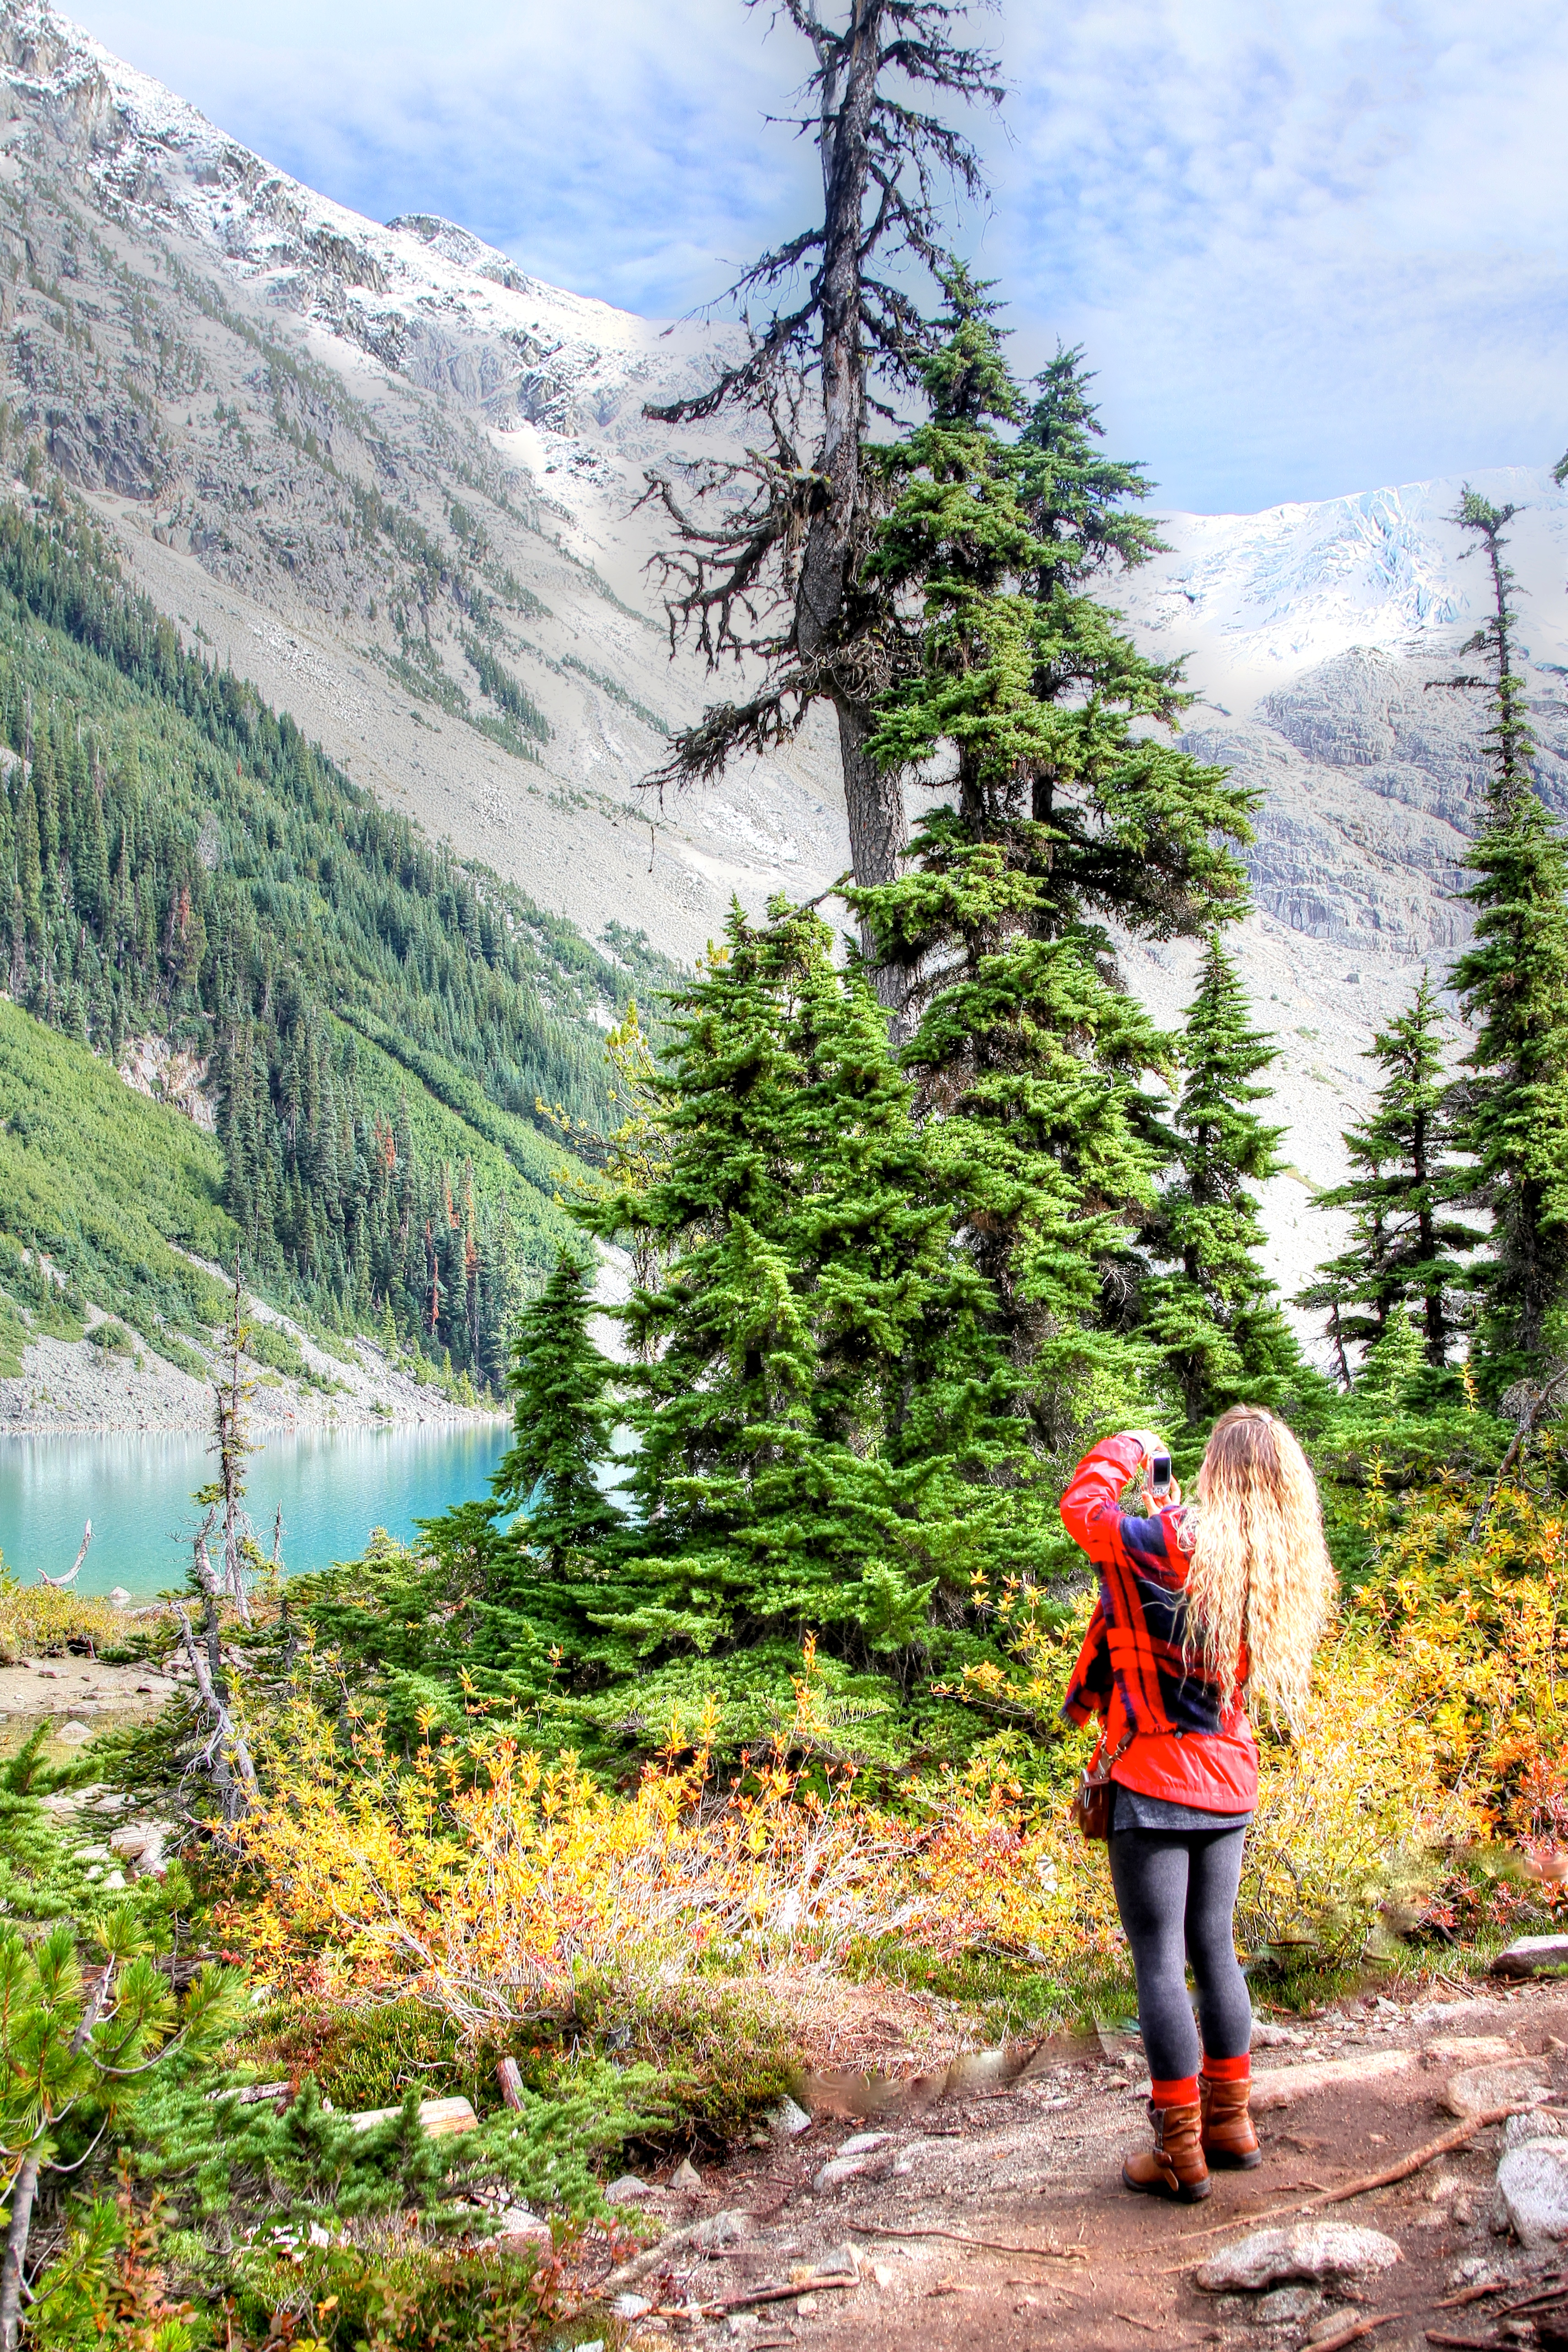 Kendra in British Colombia